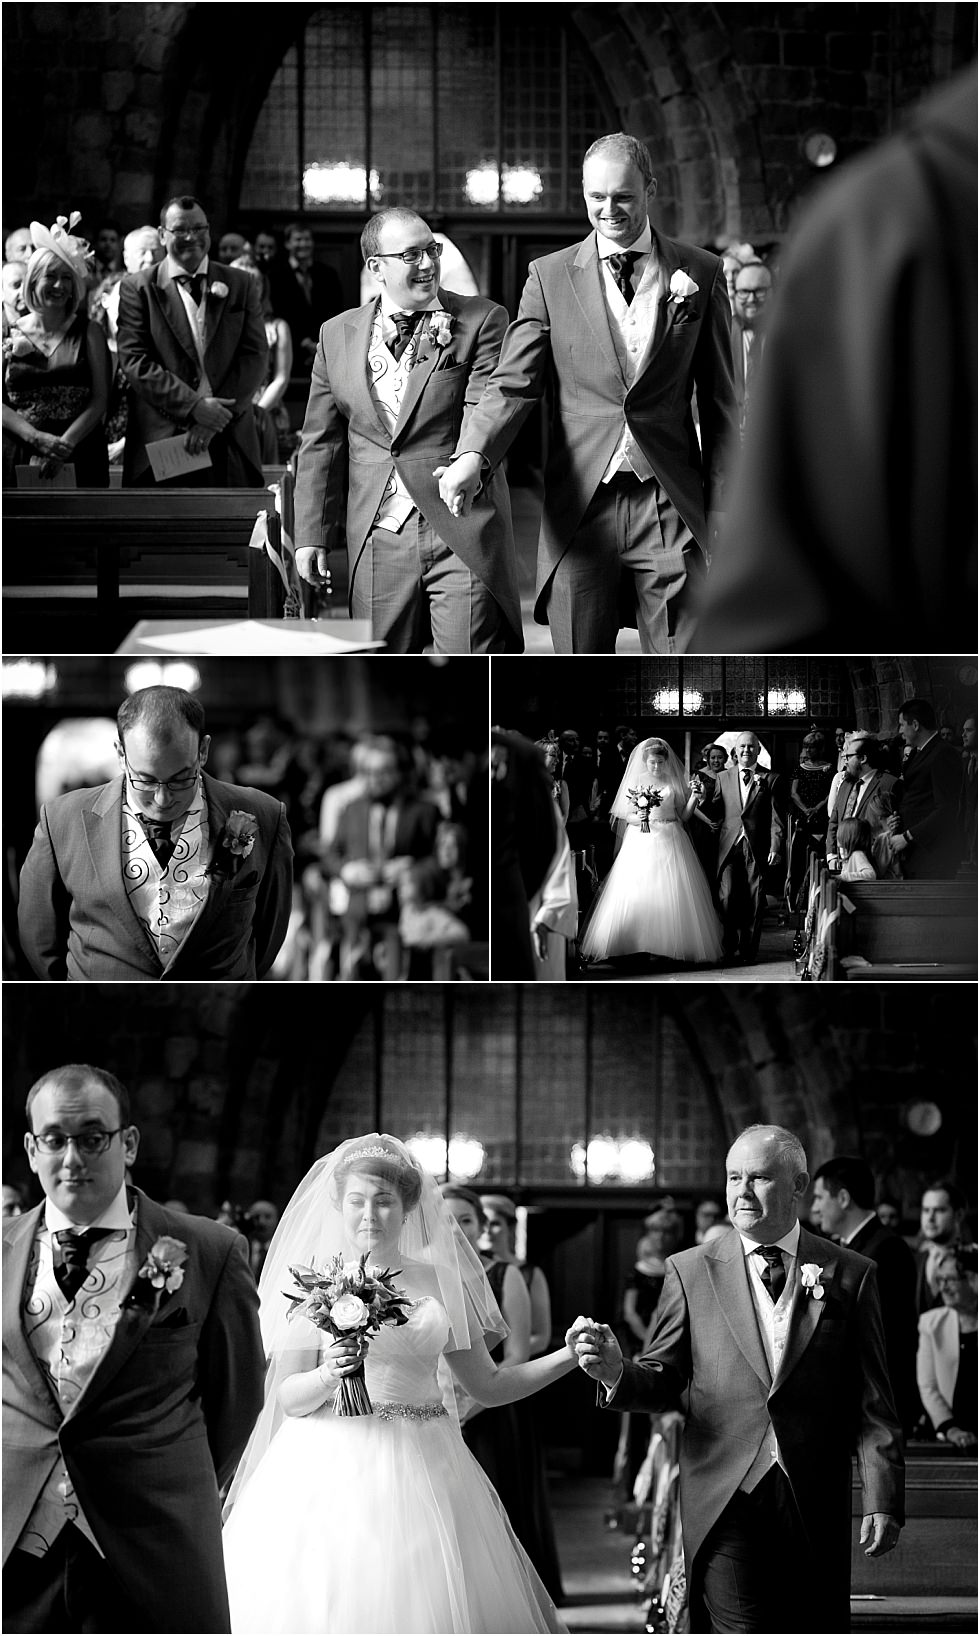 Breadsall Priory Wedding 09